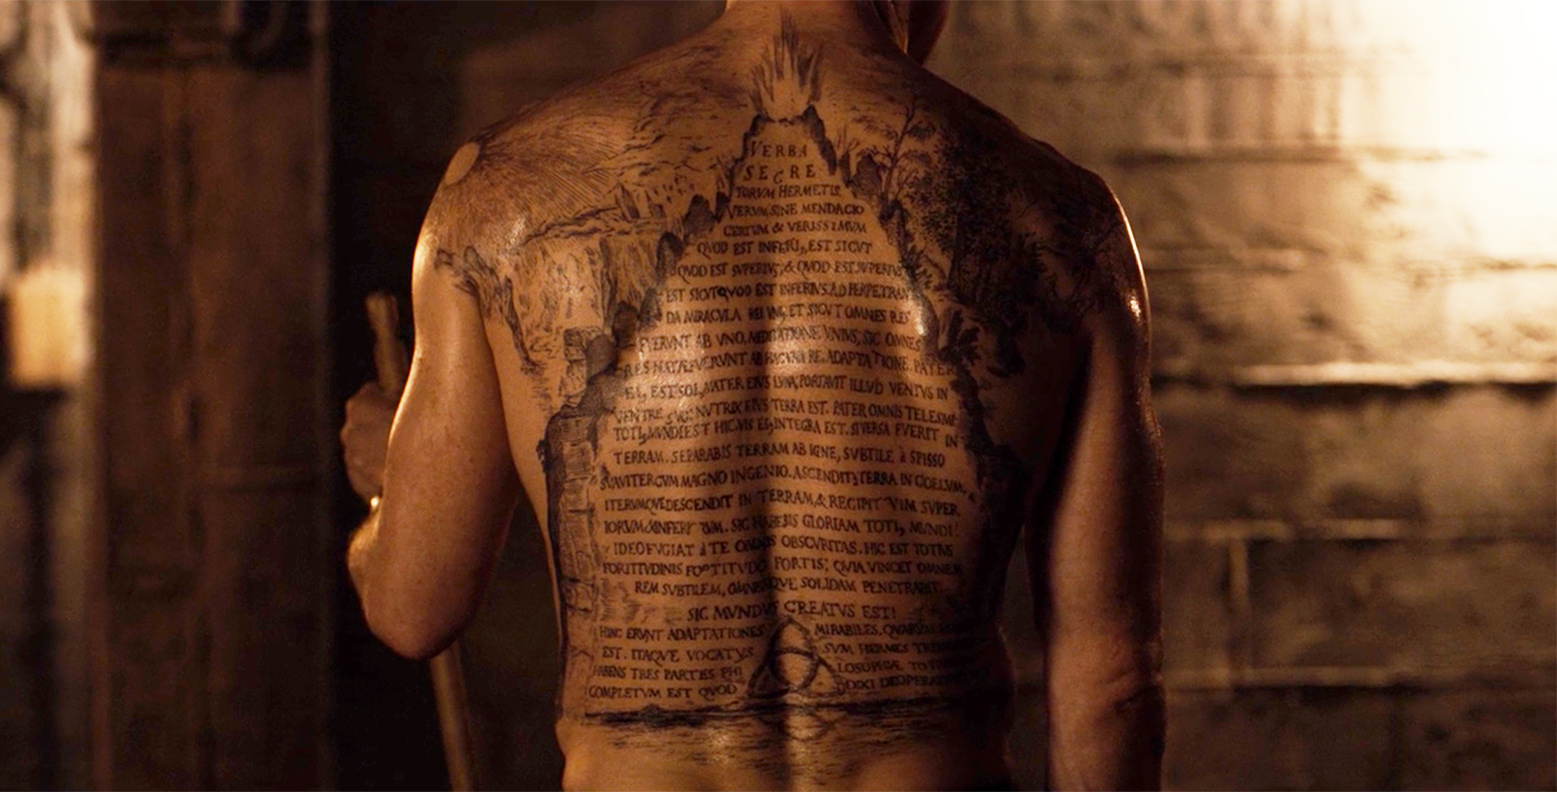 d57b9fe36 The Emerald Tablet: The Esoteric Text at the Core of Netflix's Hit Series  'Dark' - The Daily Grail